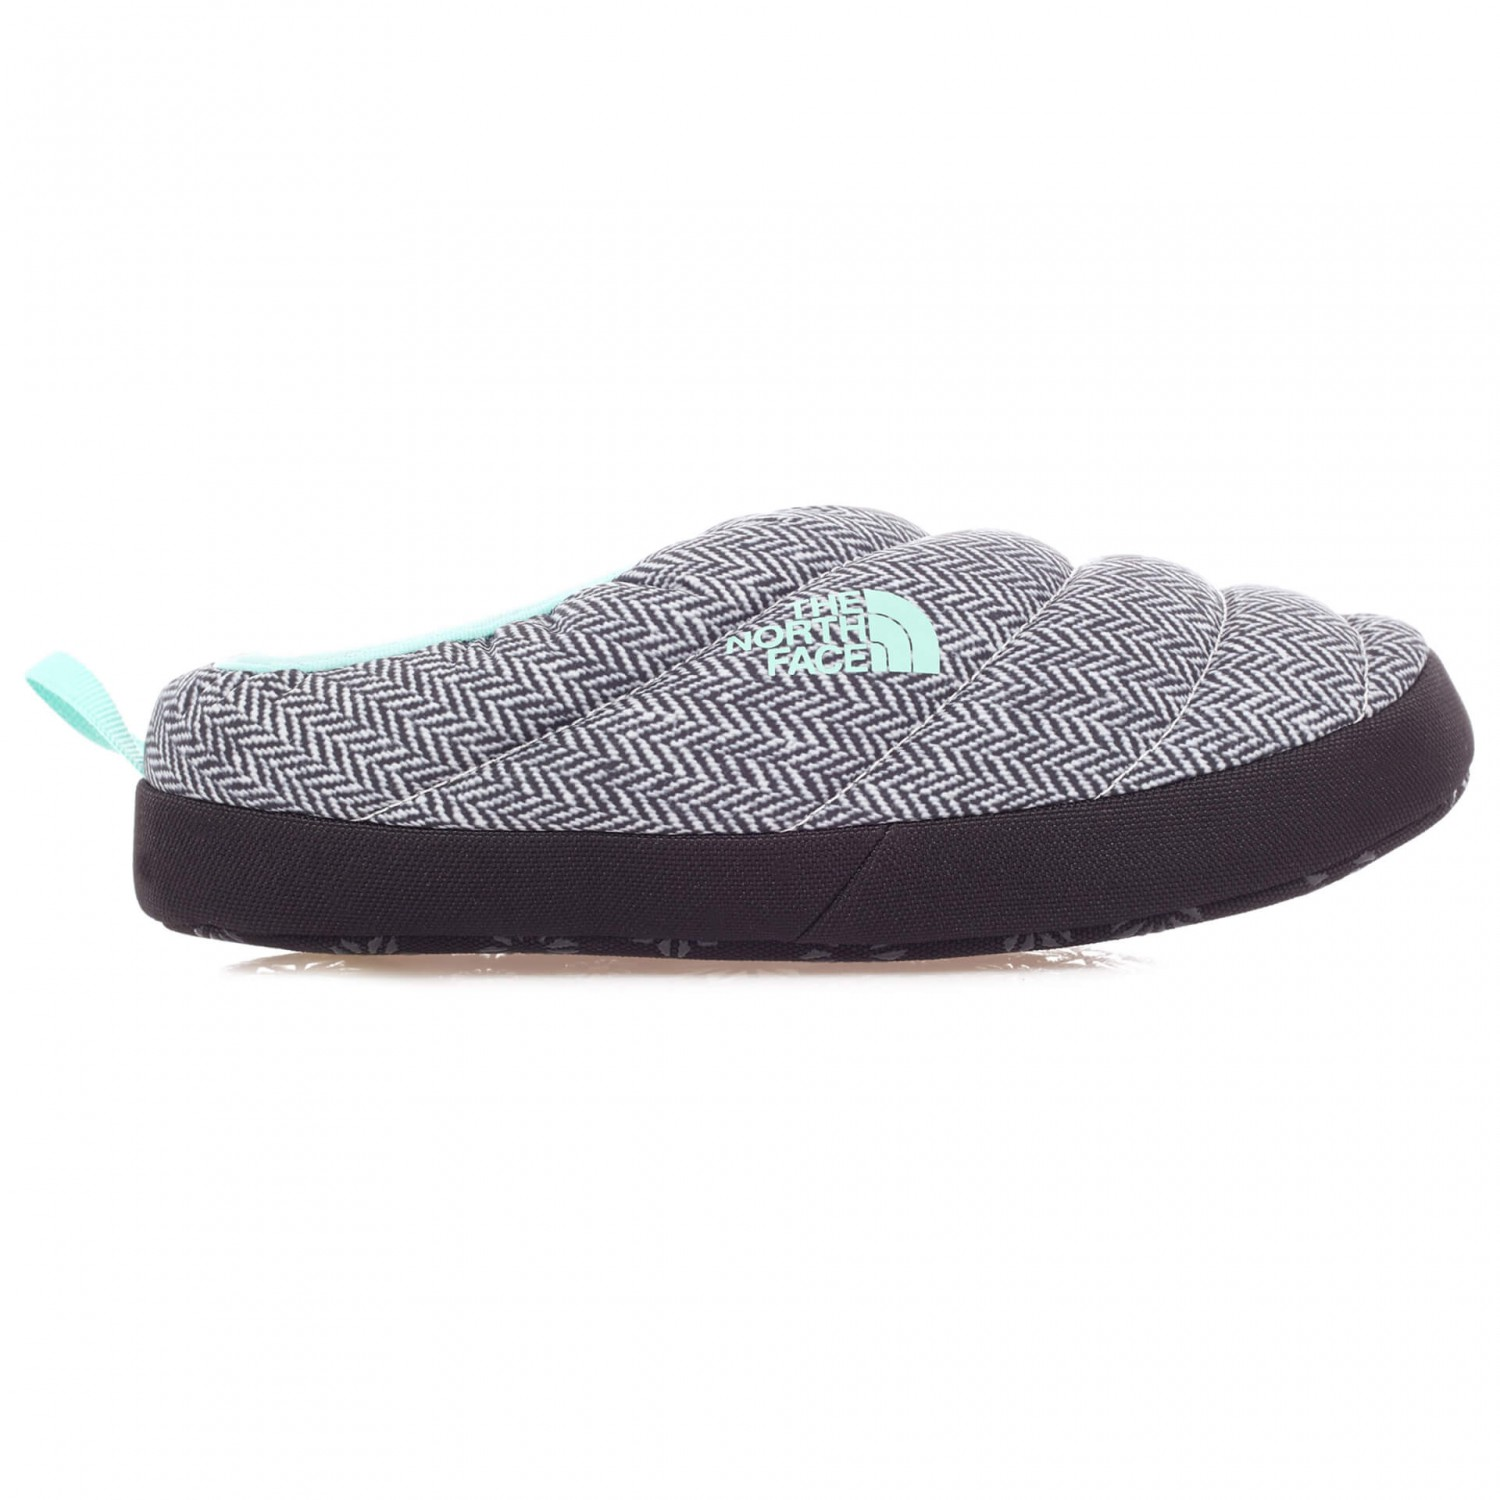 ... The North Face - Womenu0027s Nse Tent Mule III - Slippers ...  sc 1 st  Alpinetrek & The North Face Nse Tent Mule III - Slippers Womenu0027s | Buy online ...